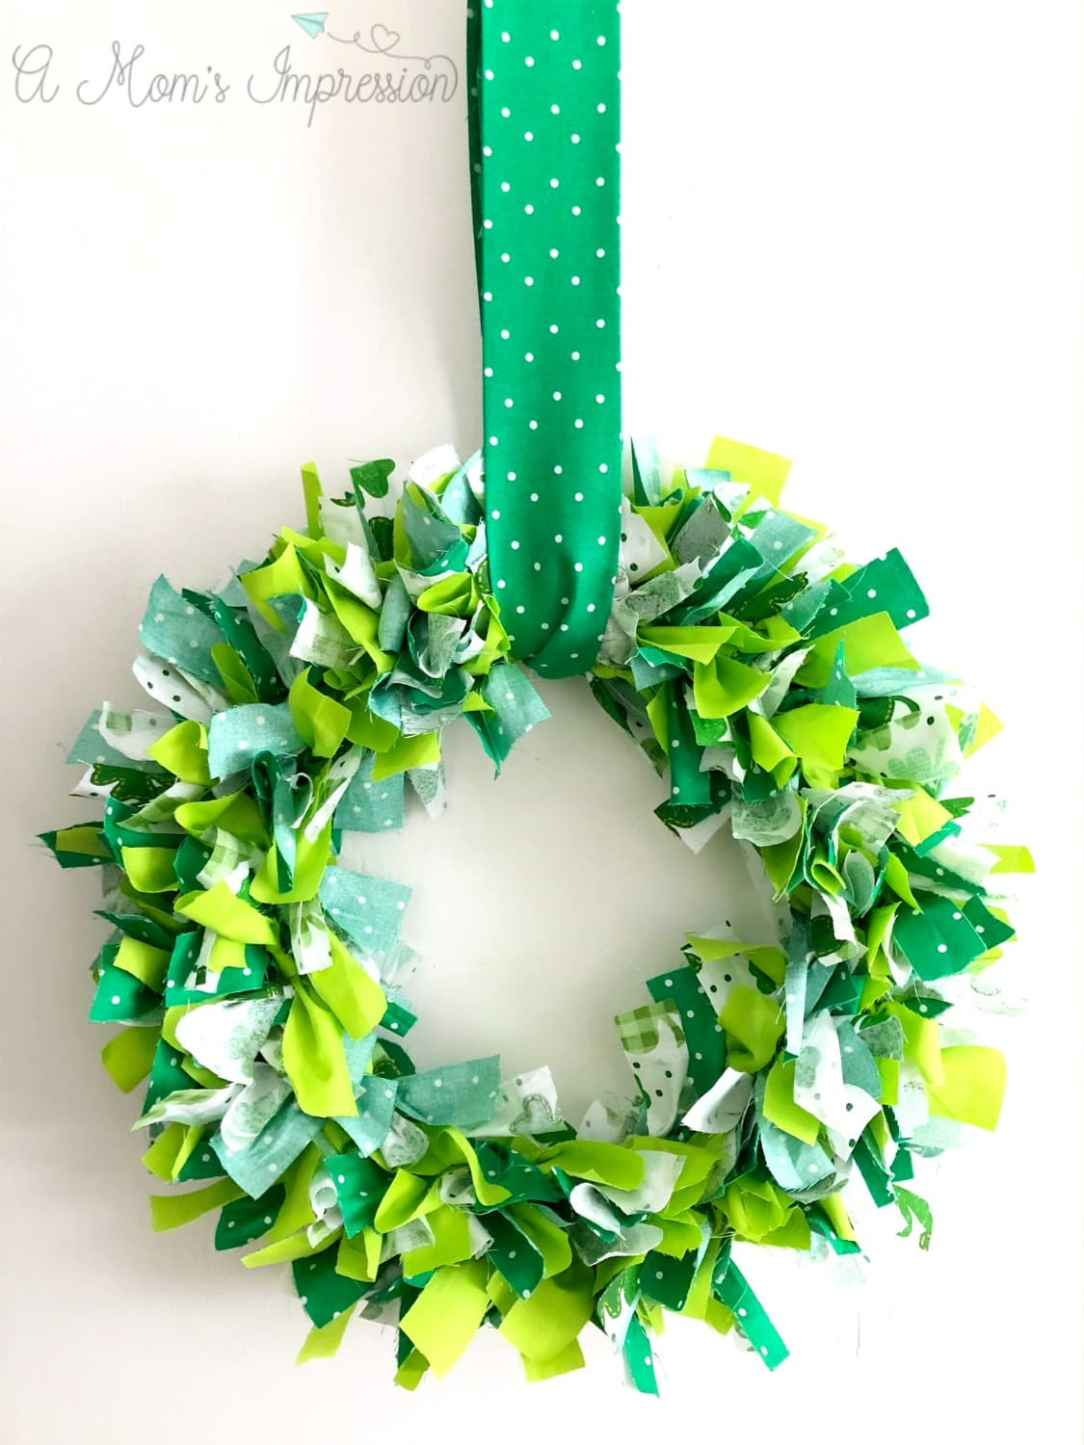 How to Make a Shamrock Wreath